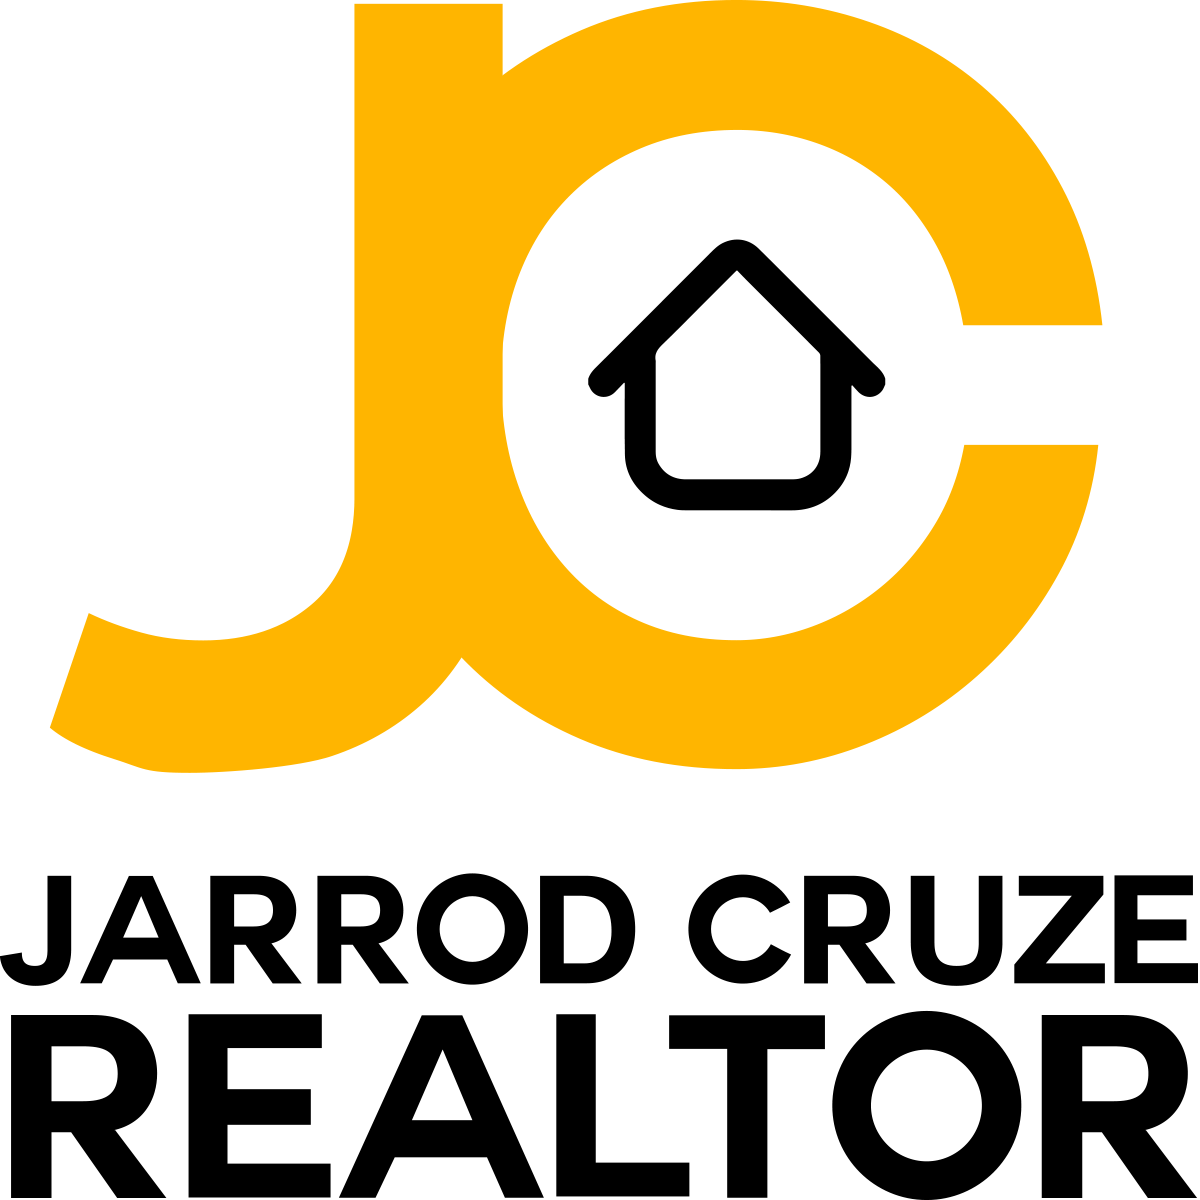 JCruze_ClearBackground_Logo Yellow and black.png